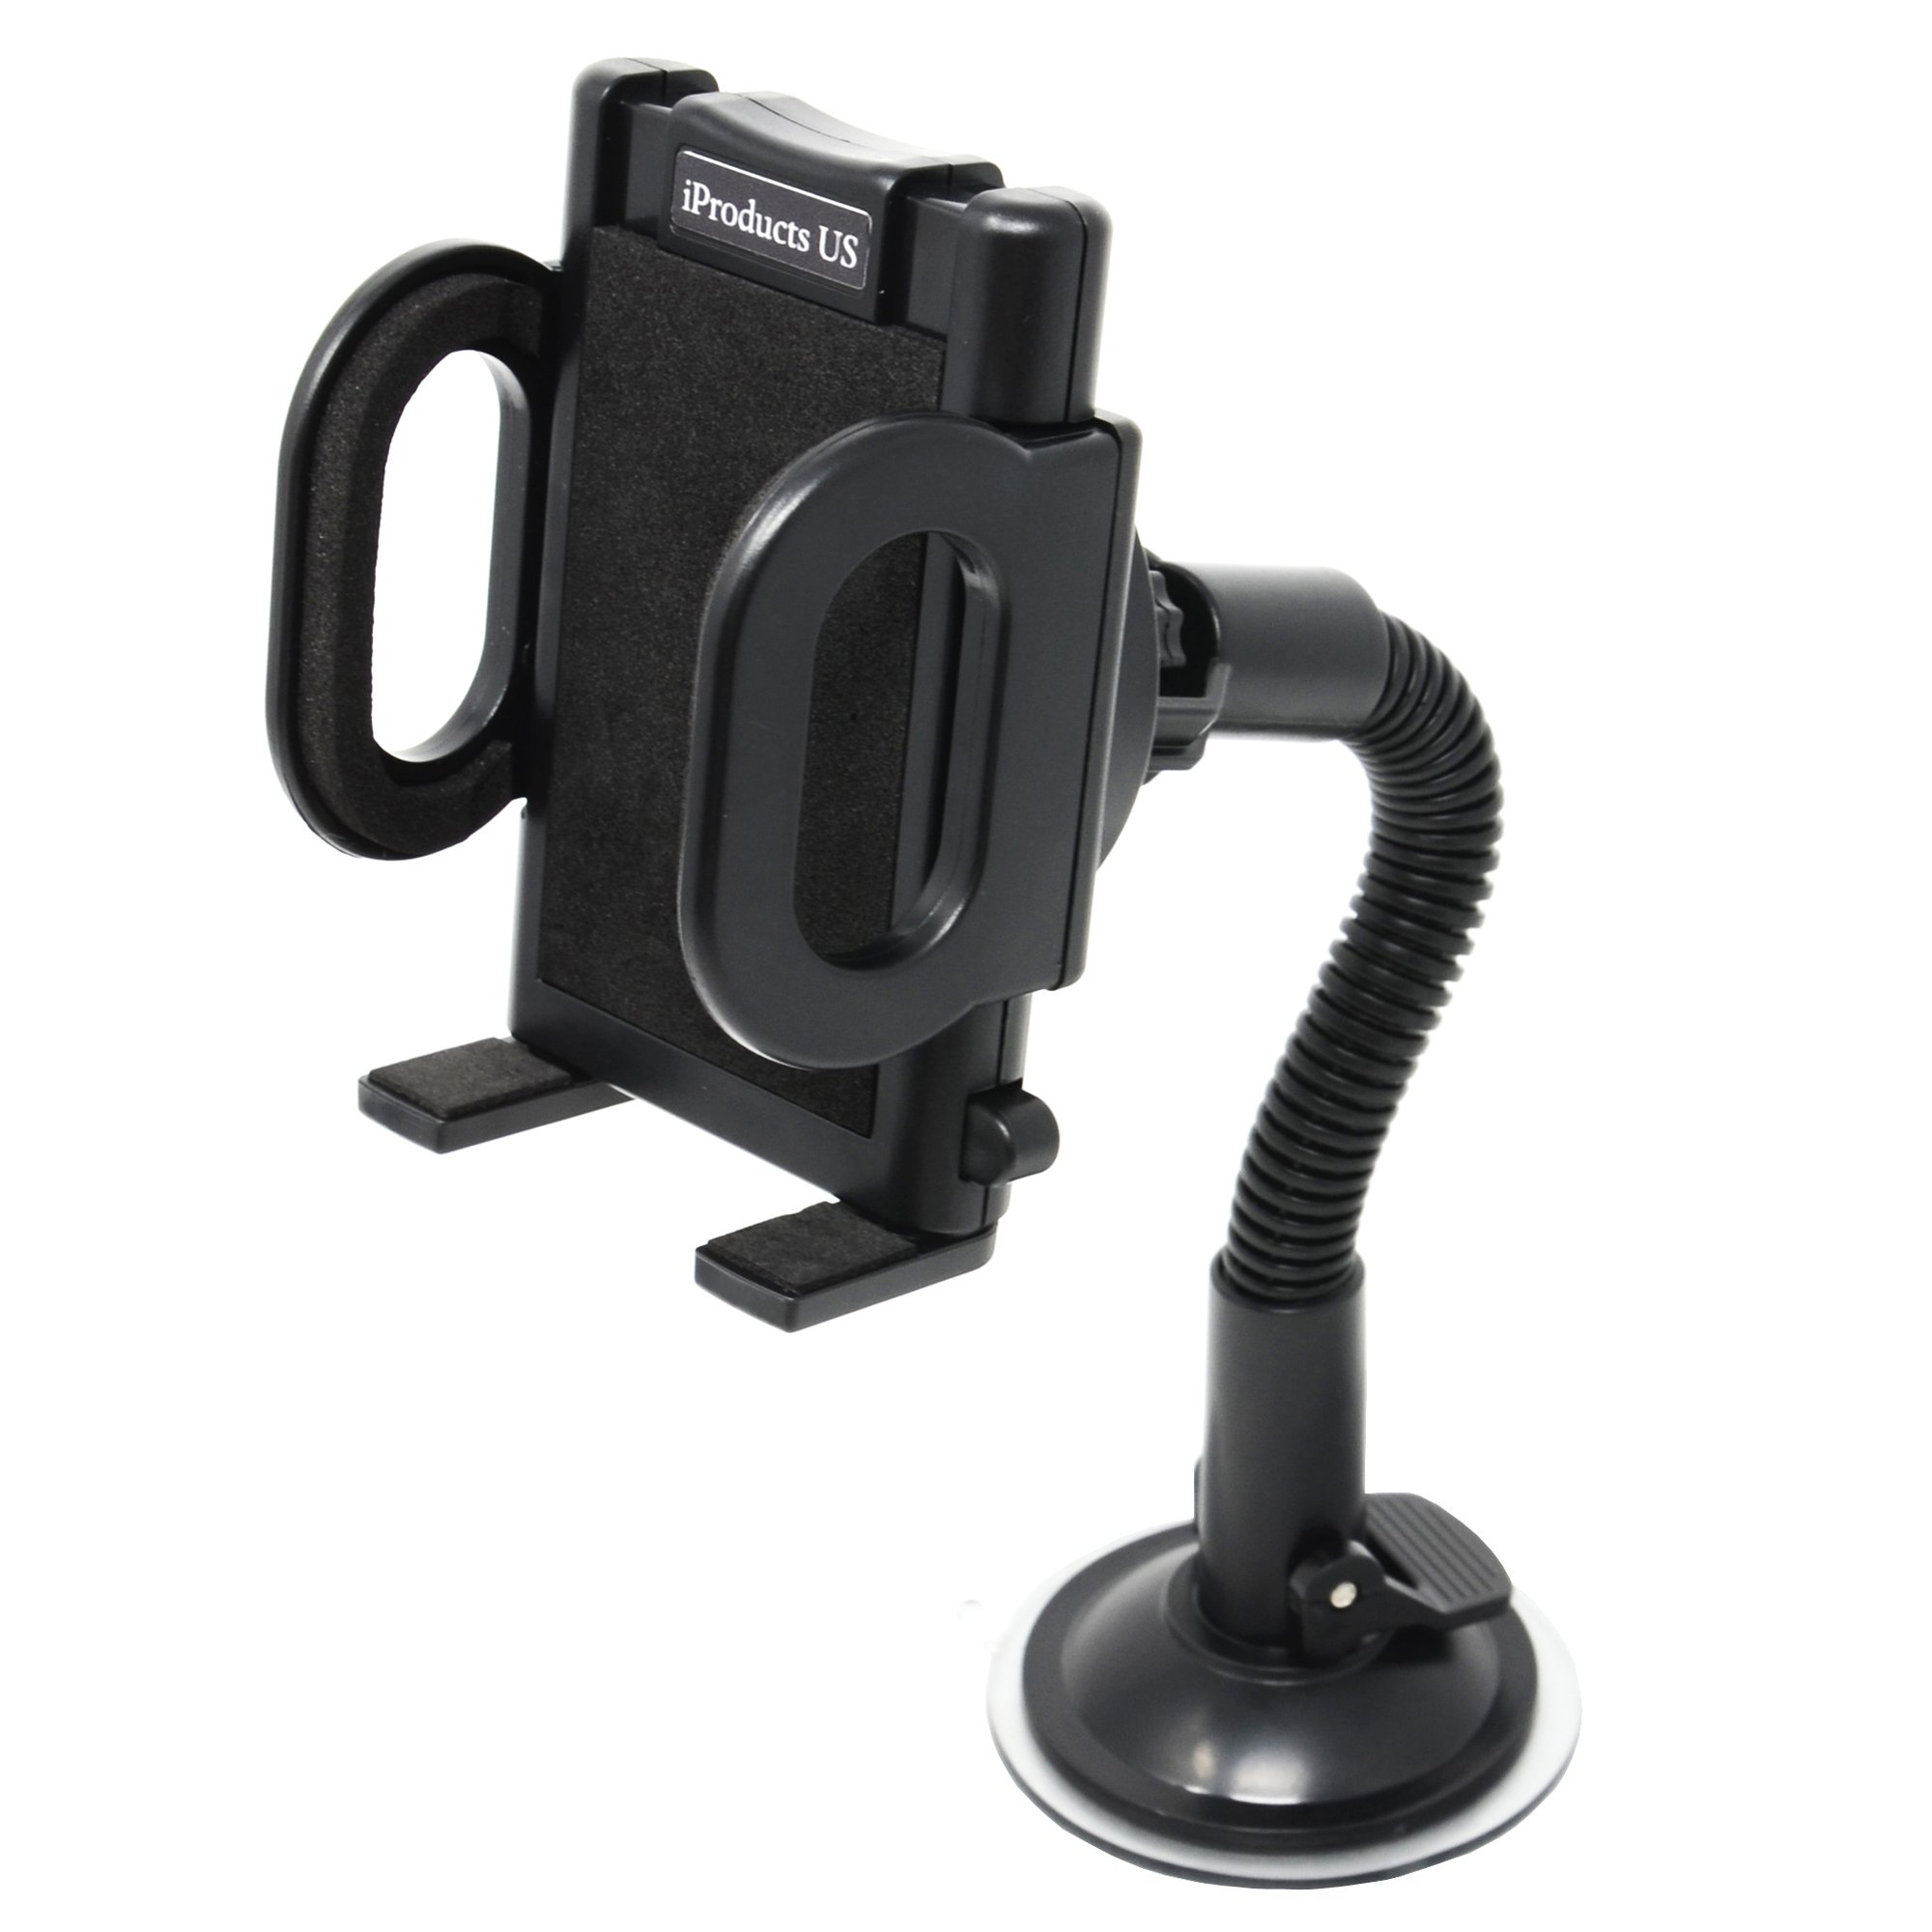 Phone Holder for Car iProductsUS Car Phone Mount Universal Windshield Cell Phone Holder for iPhone 7/6S/6 Plus/5S/5 Samsung Galaxy S7/S6 Edge Nexus LG HTC GPS Devices 3.5-6 inch (Black)